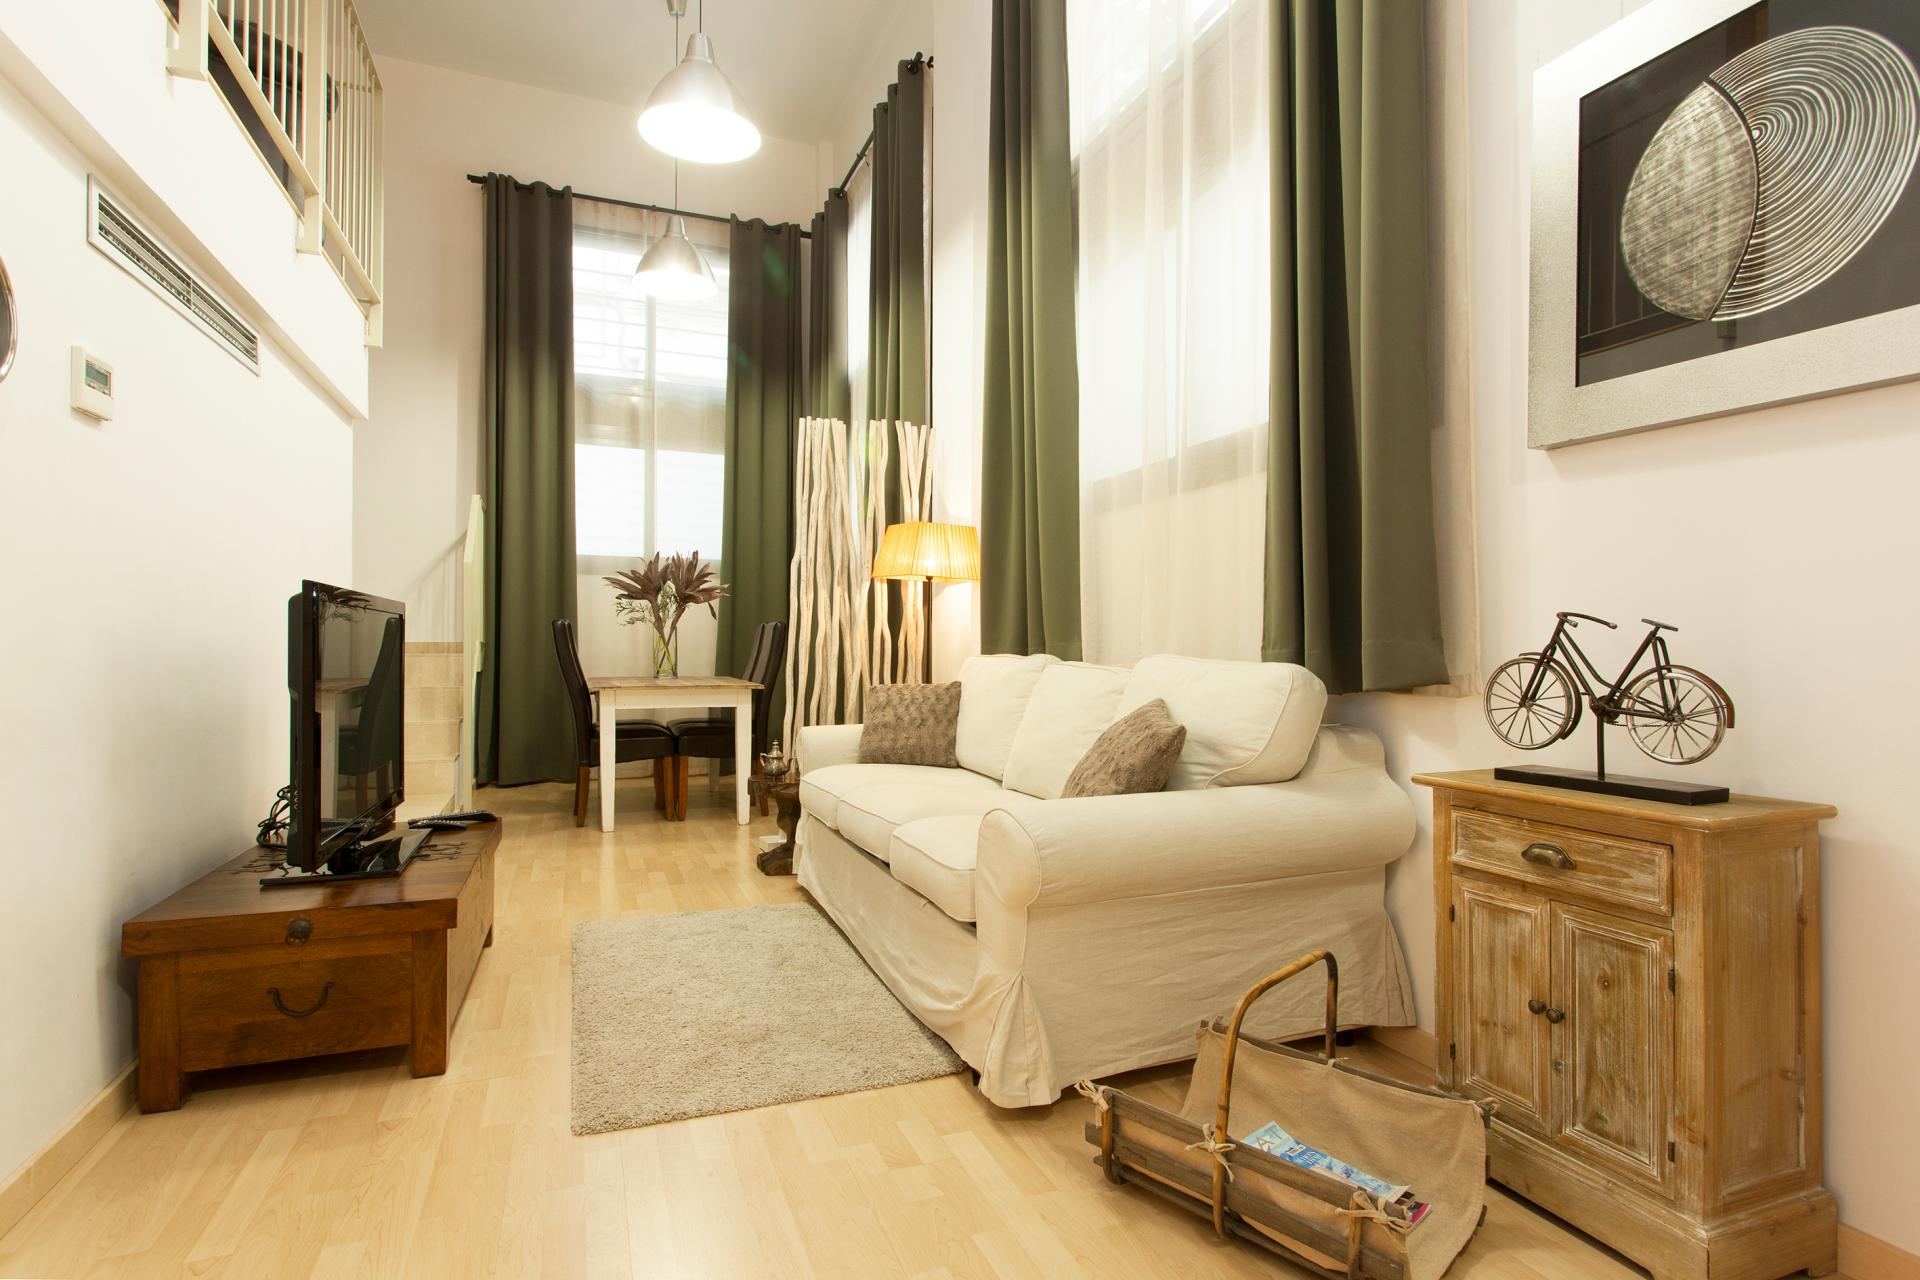 Fantastic two bedrooms duplex for rent located in Barcelona